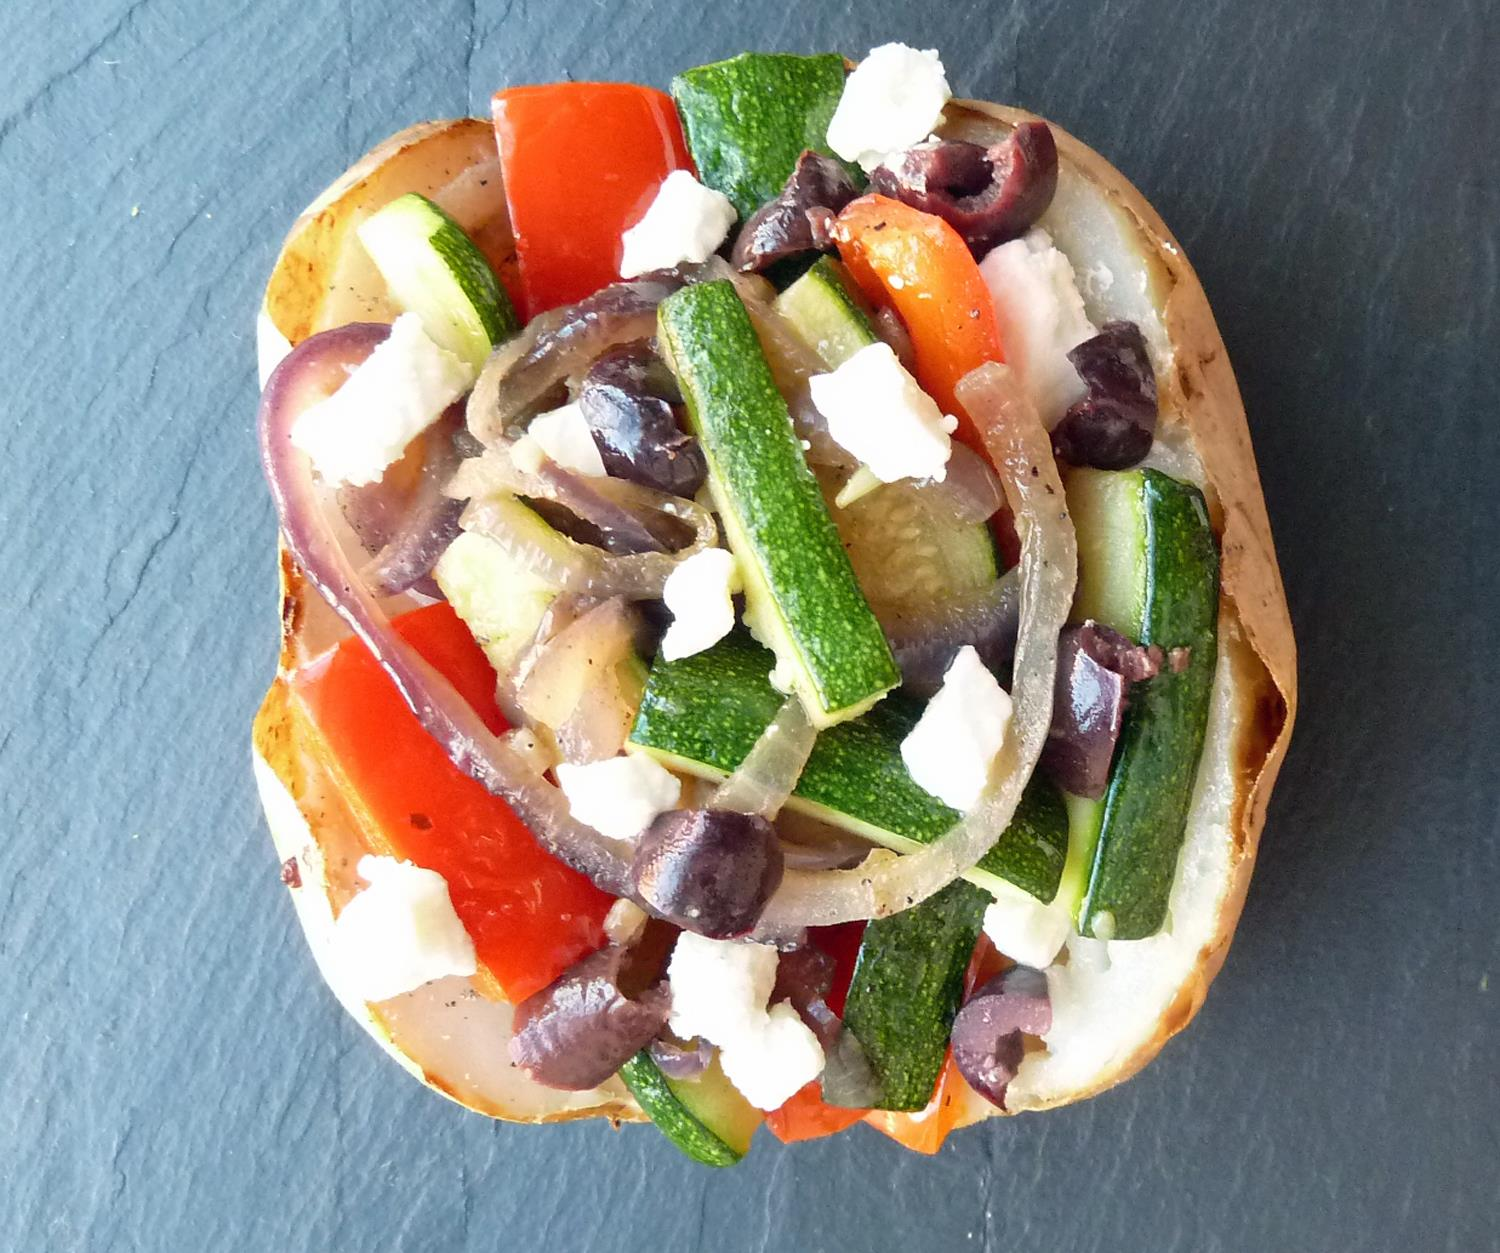 Turn your baked potato into a meal: 7 simple yet irresistible ways to dress up spuds